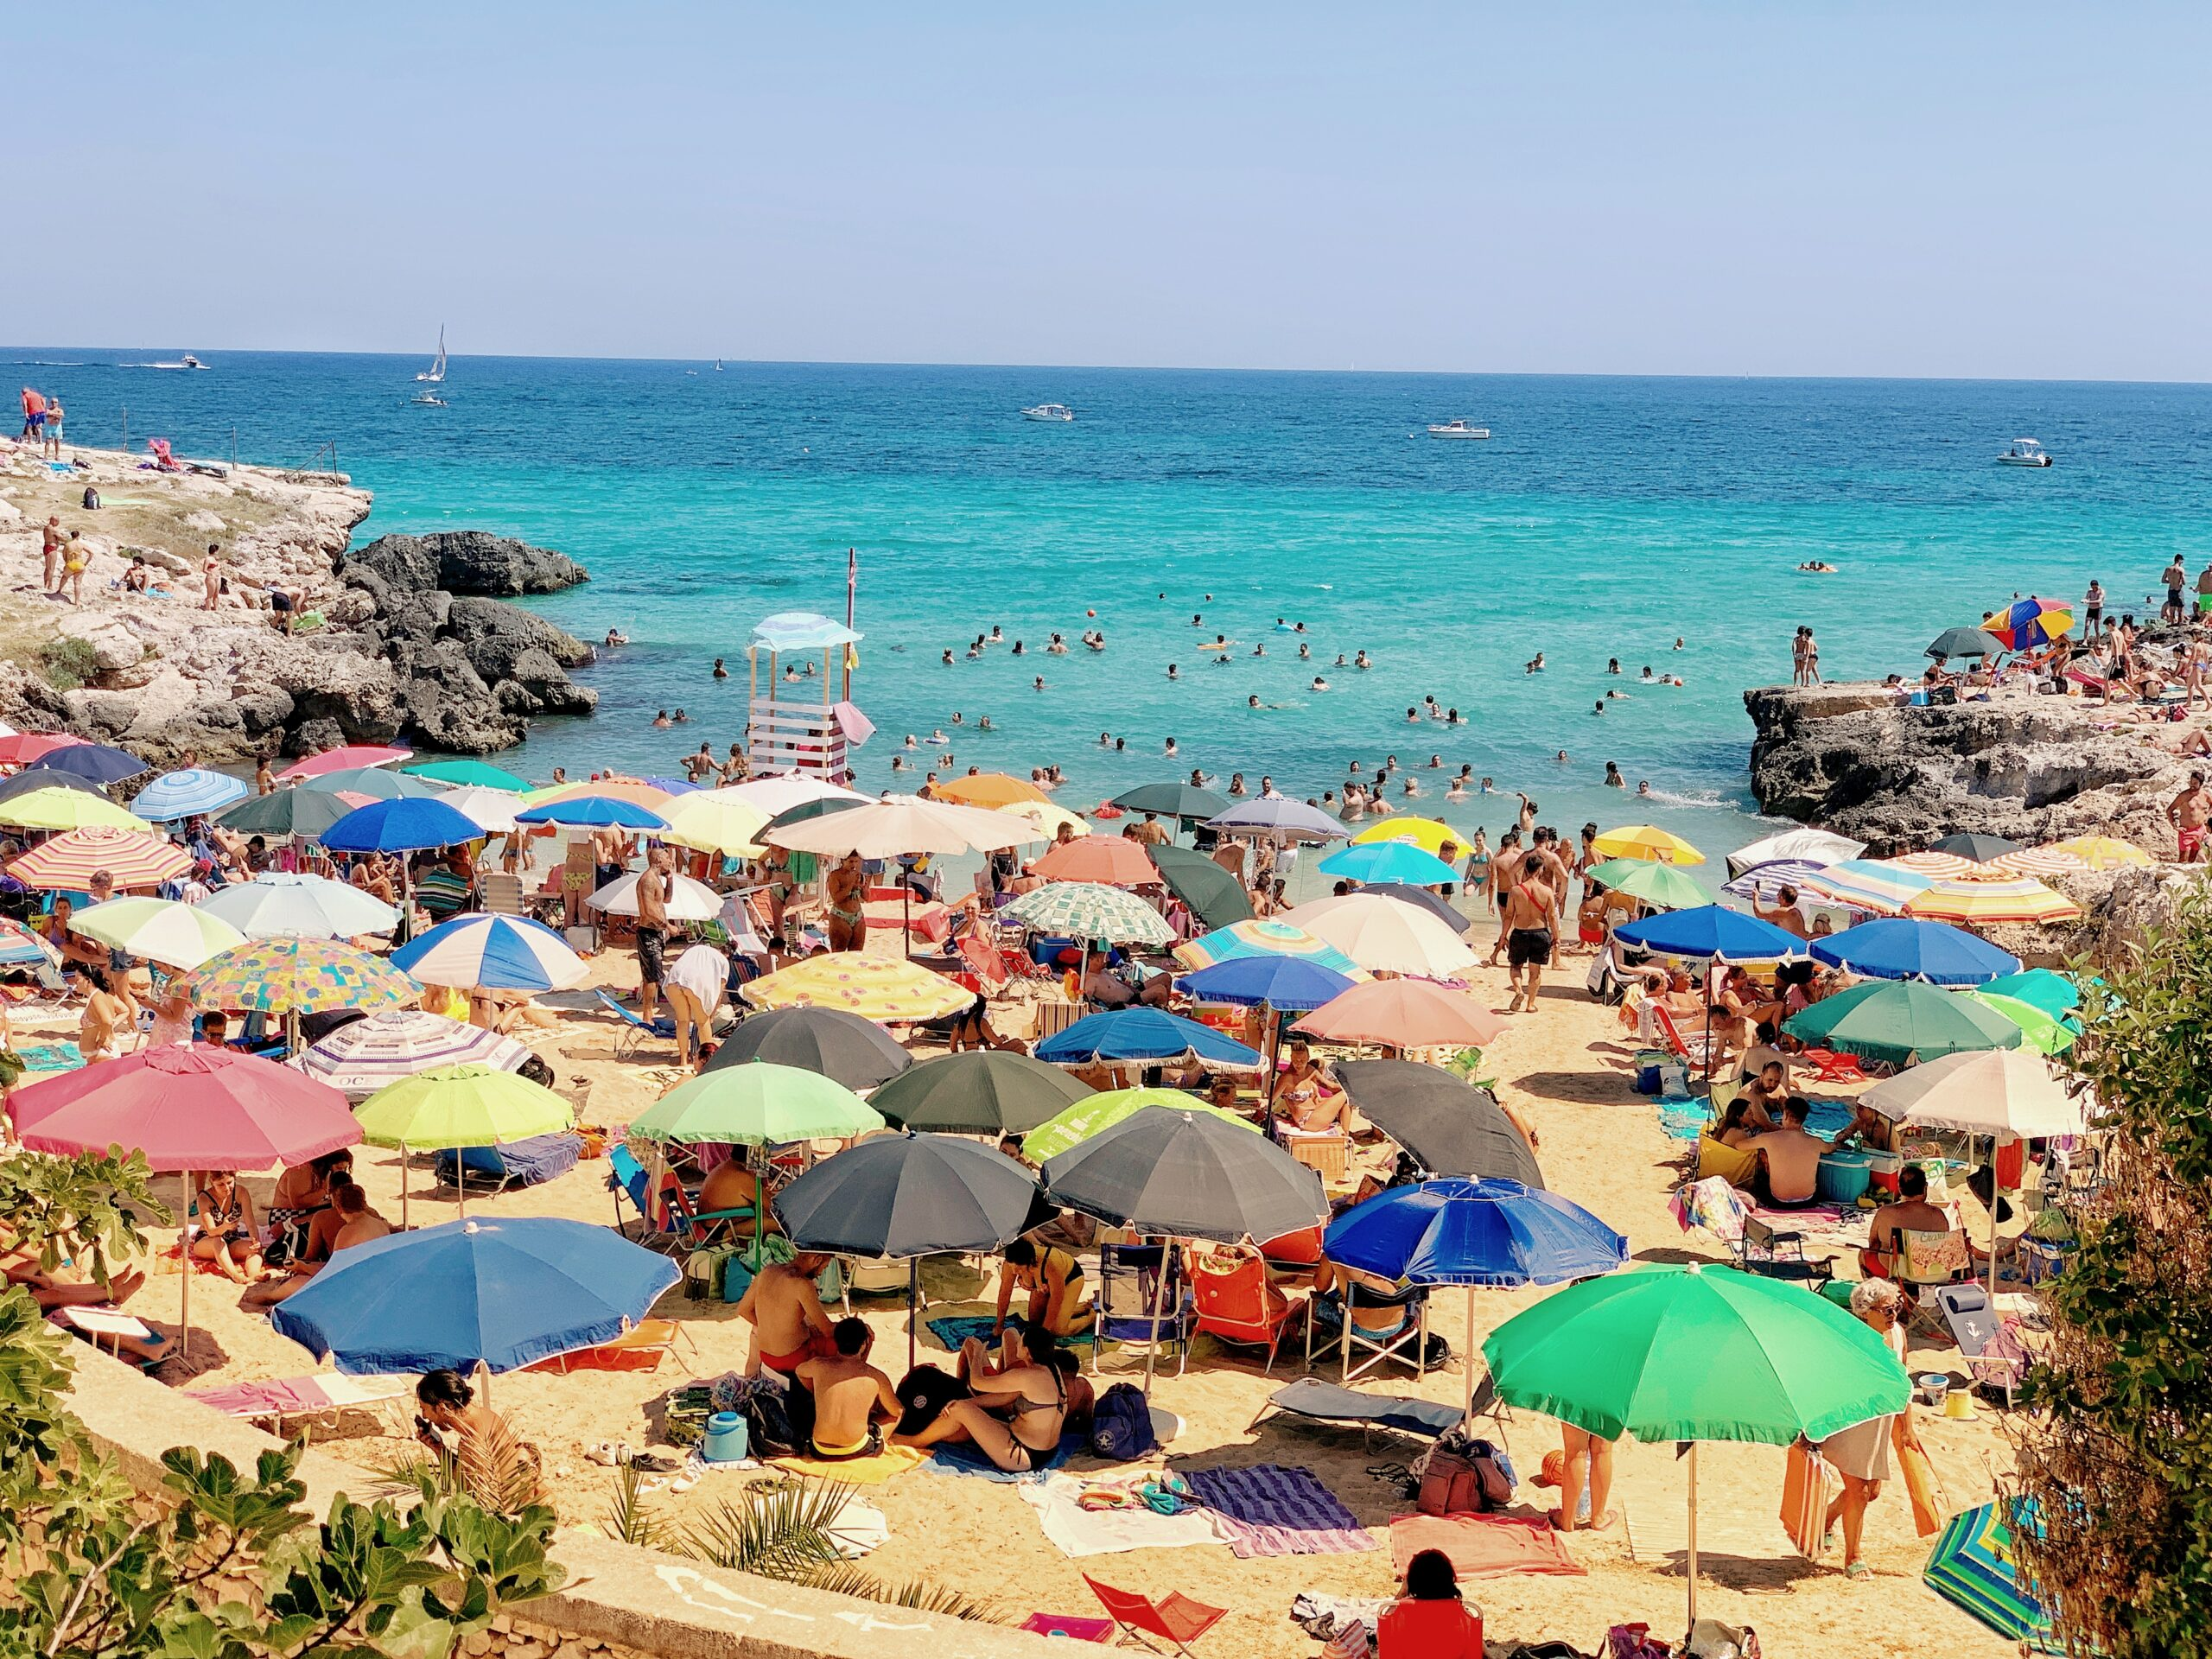 Monopoli in Puglia is a popular base for visitors wanting the sea, but sandy beach is at a premium